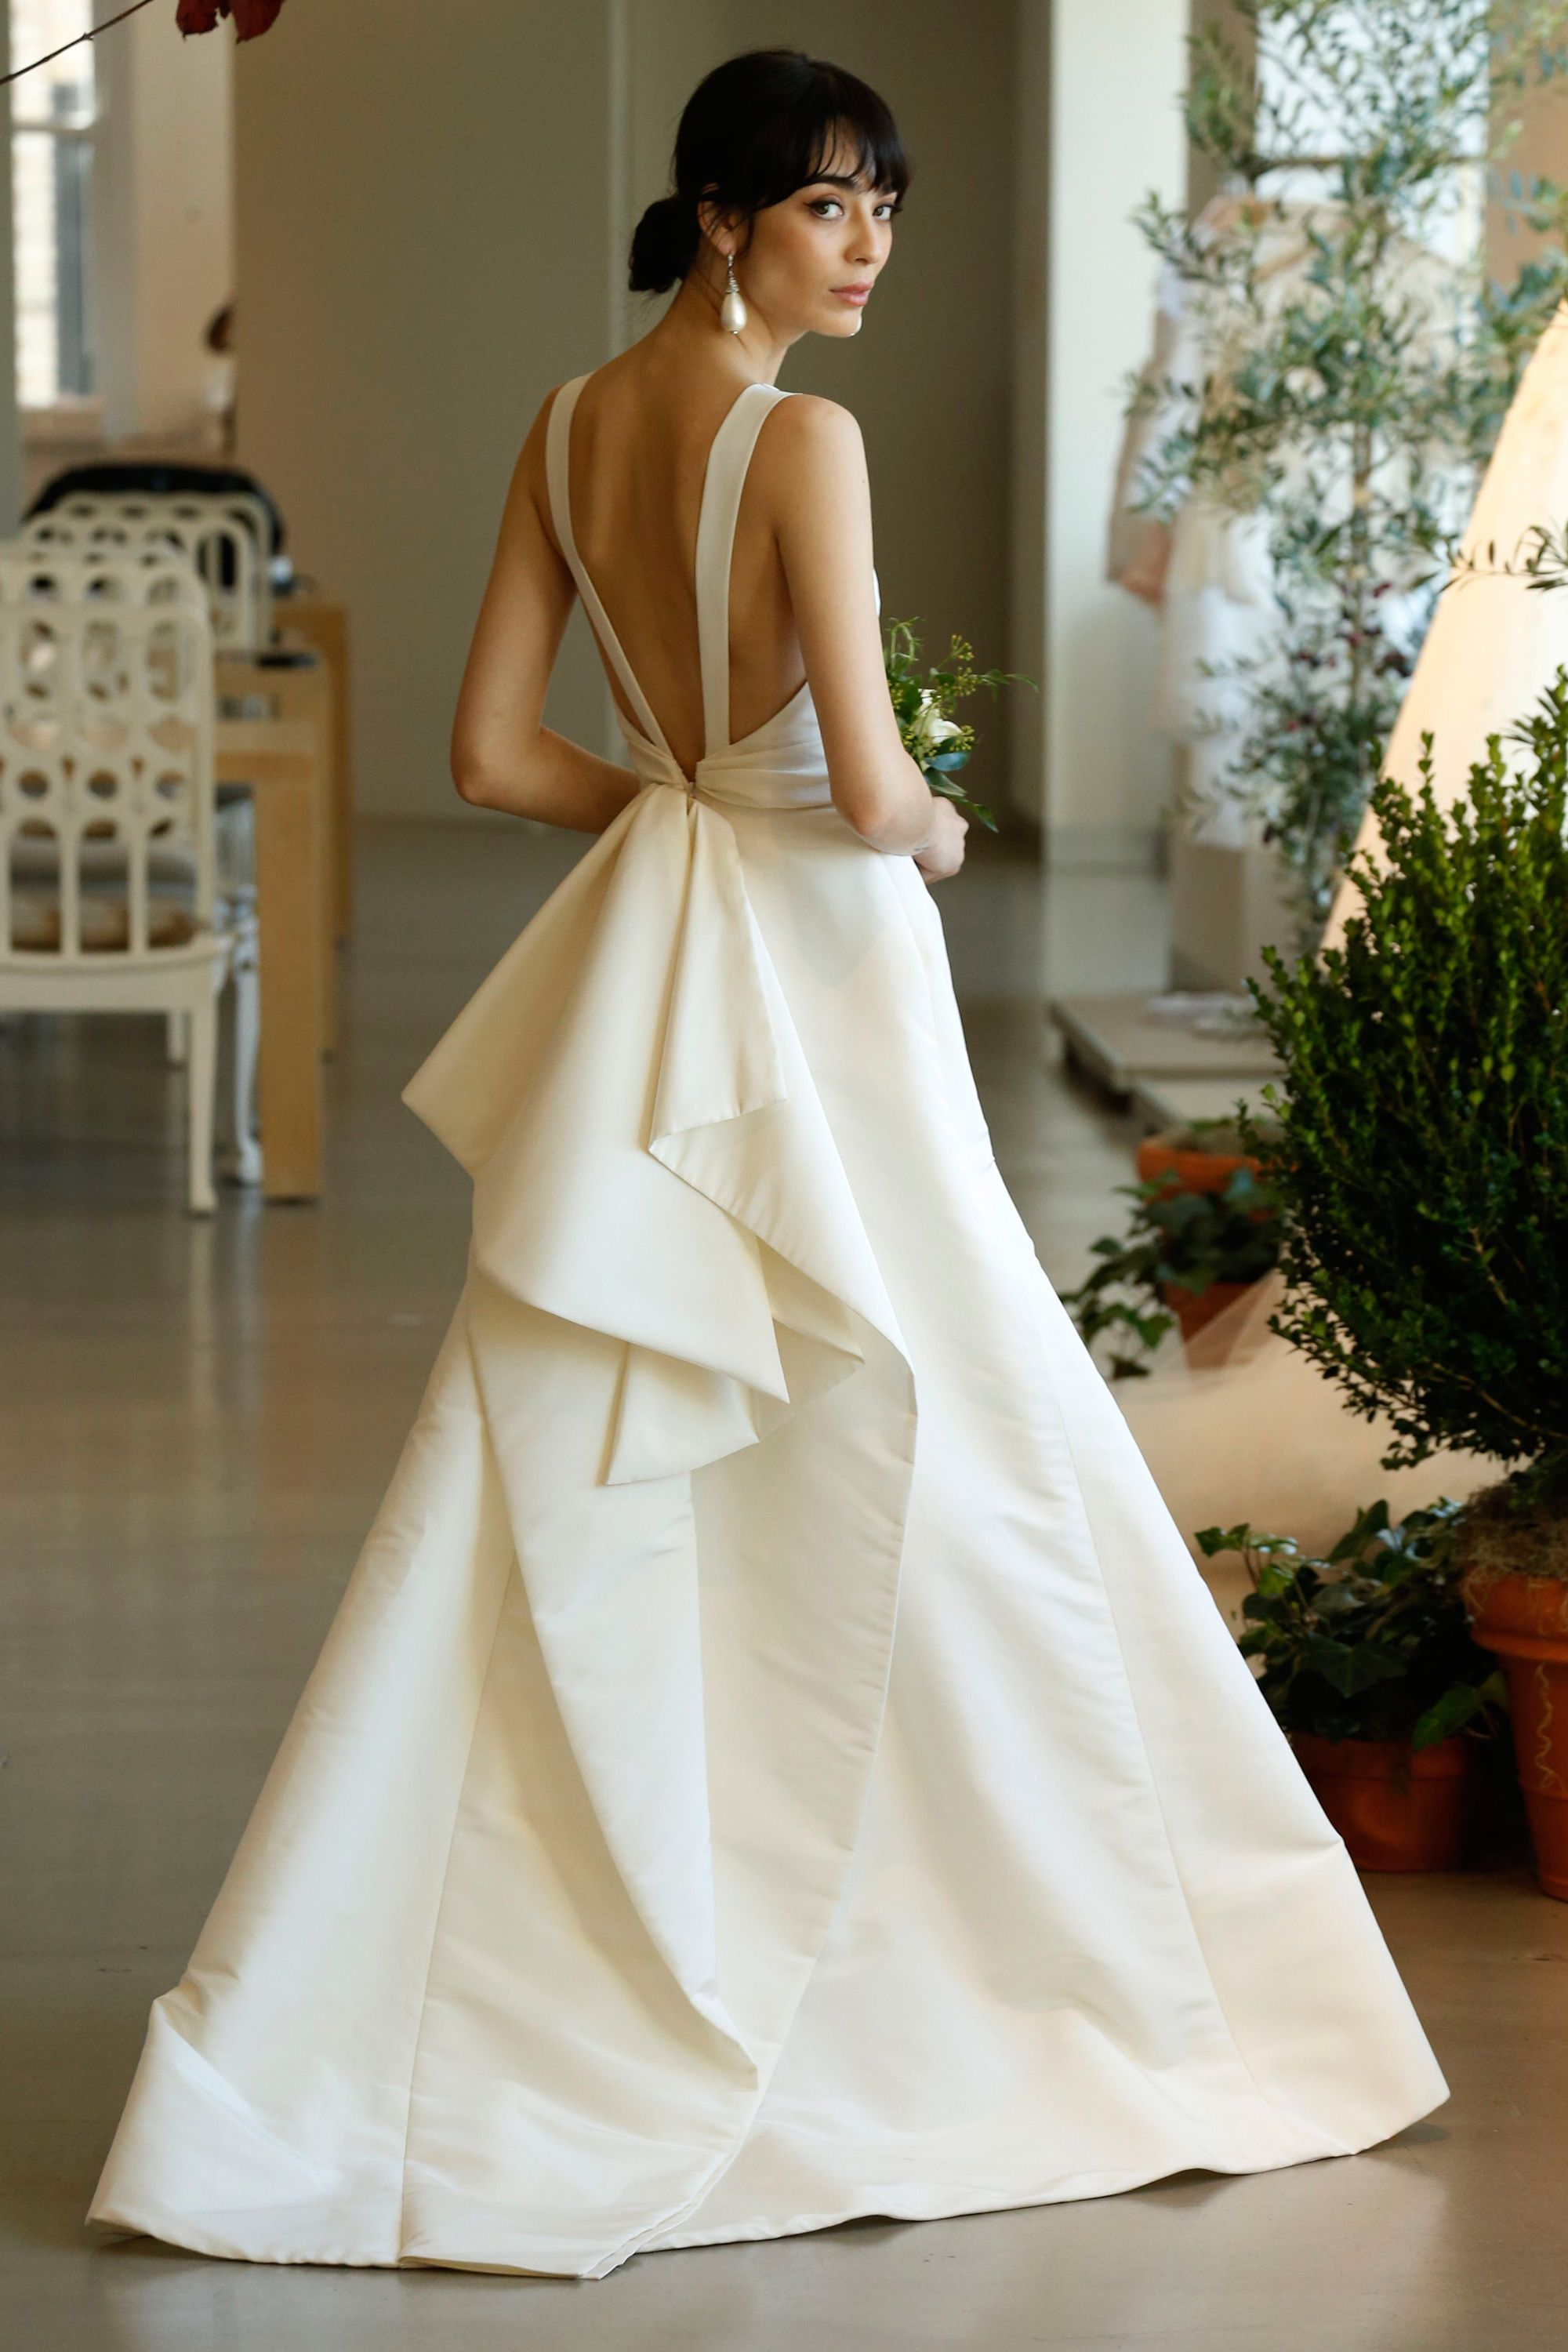 50 of the most beautiful gowns from Bridal Fashion Week | Pinterest ...